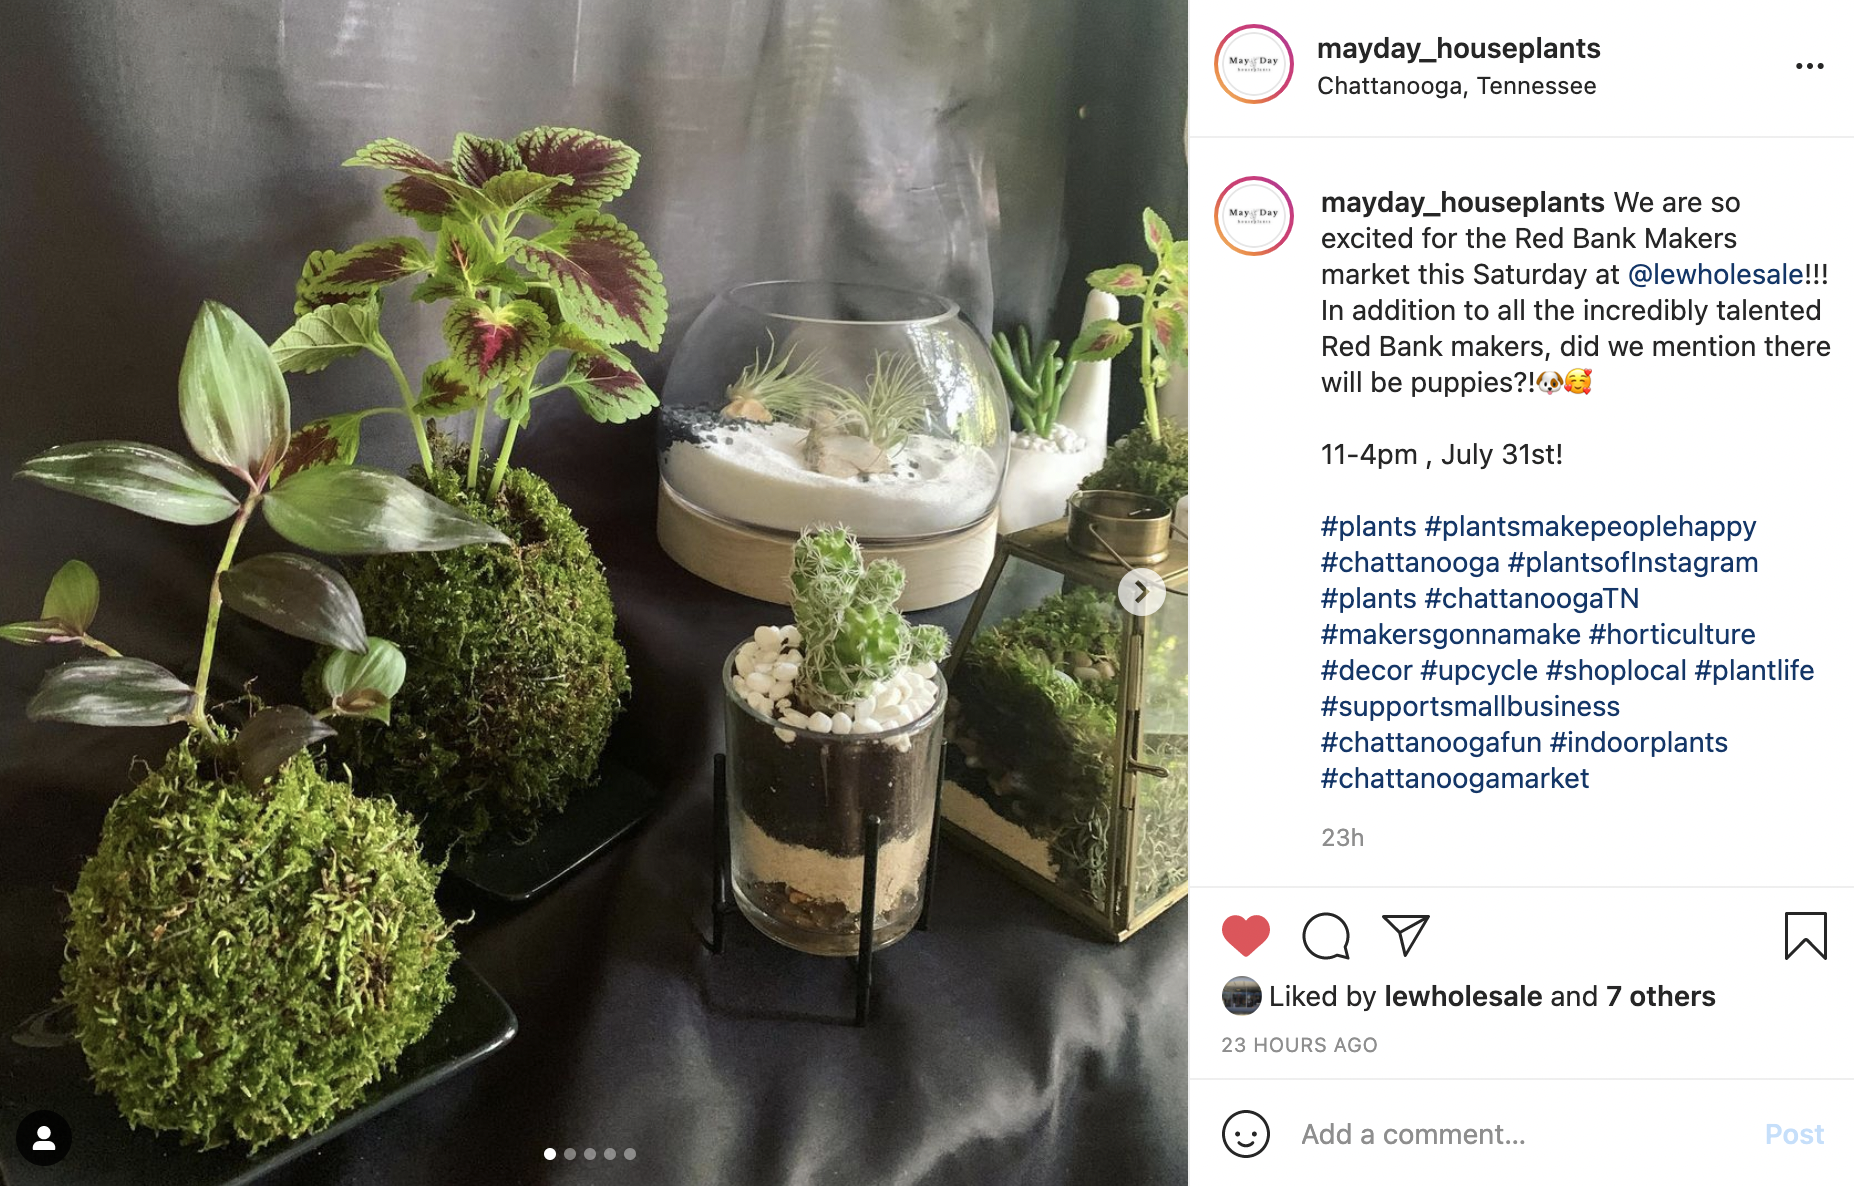 Instagram screenshot of a variety of plants and succulents—there are two plant vases made out of moss that are holding plants, plus three different terrarium-like plant holders with succulents inside